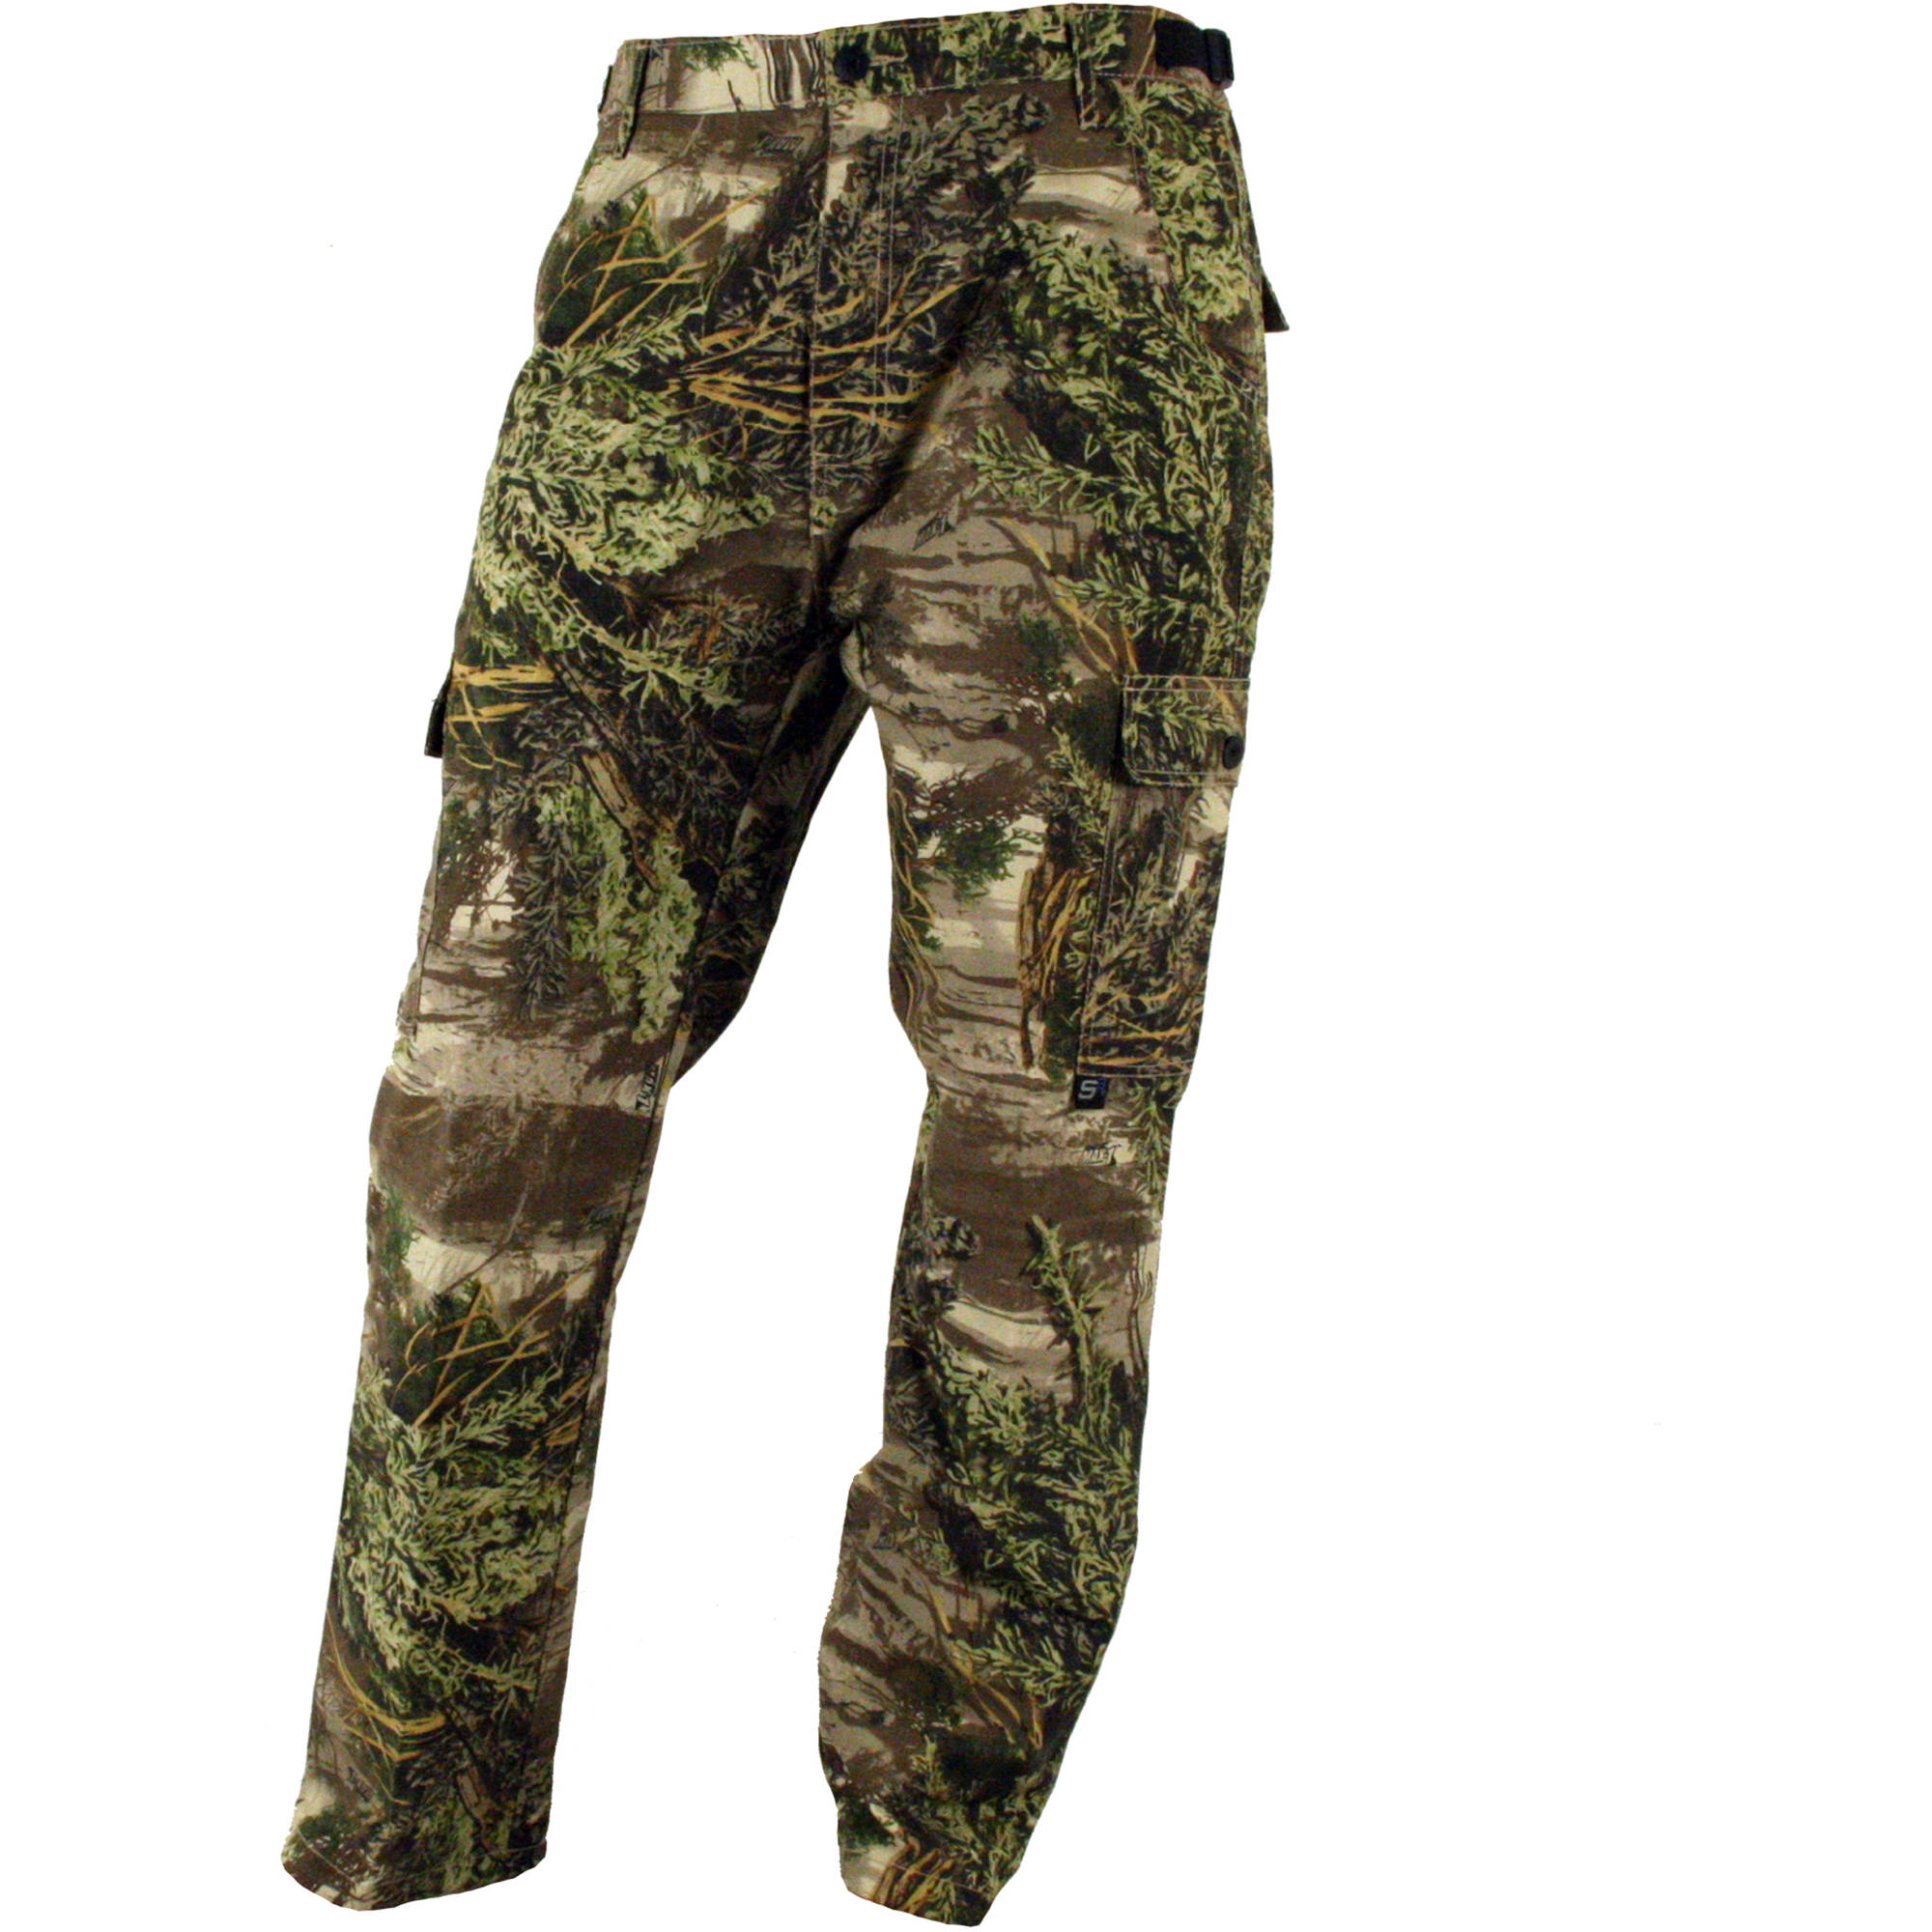 Men's S3 Silver Infused Anti-Microbial Camo Pants ScentBlocker, Available in Multiple Sizes